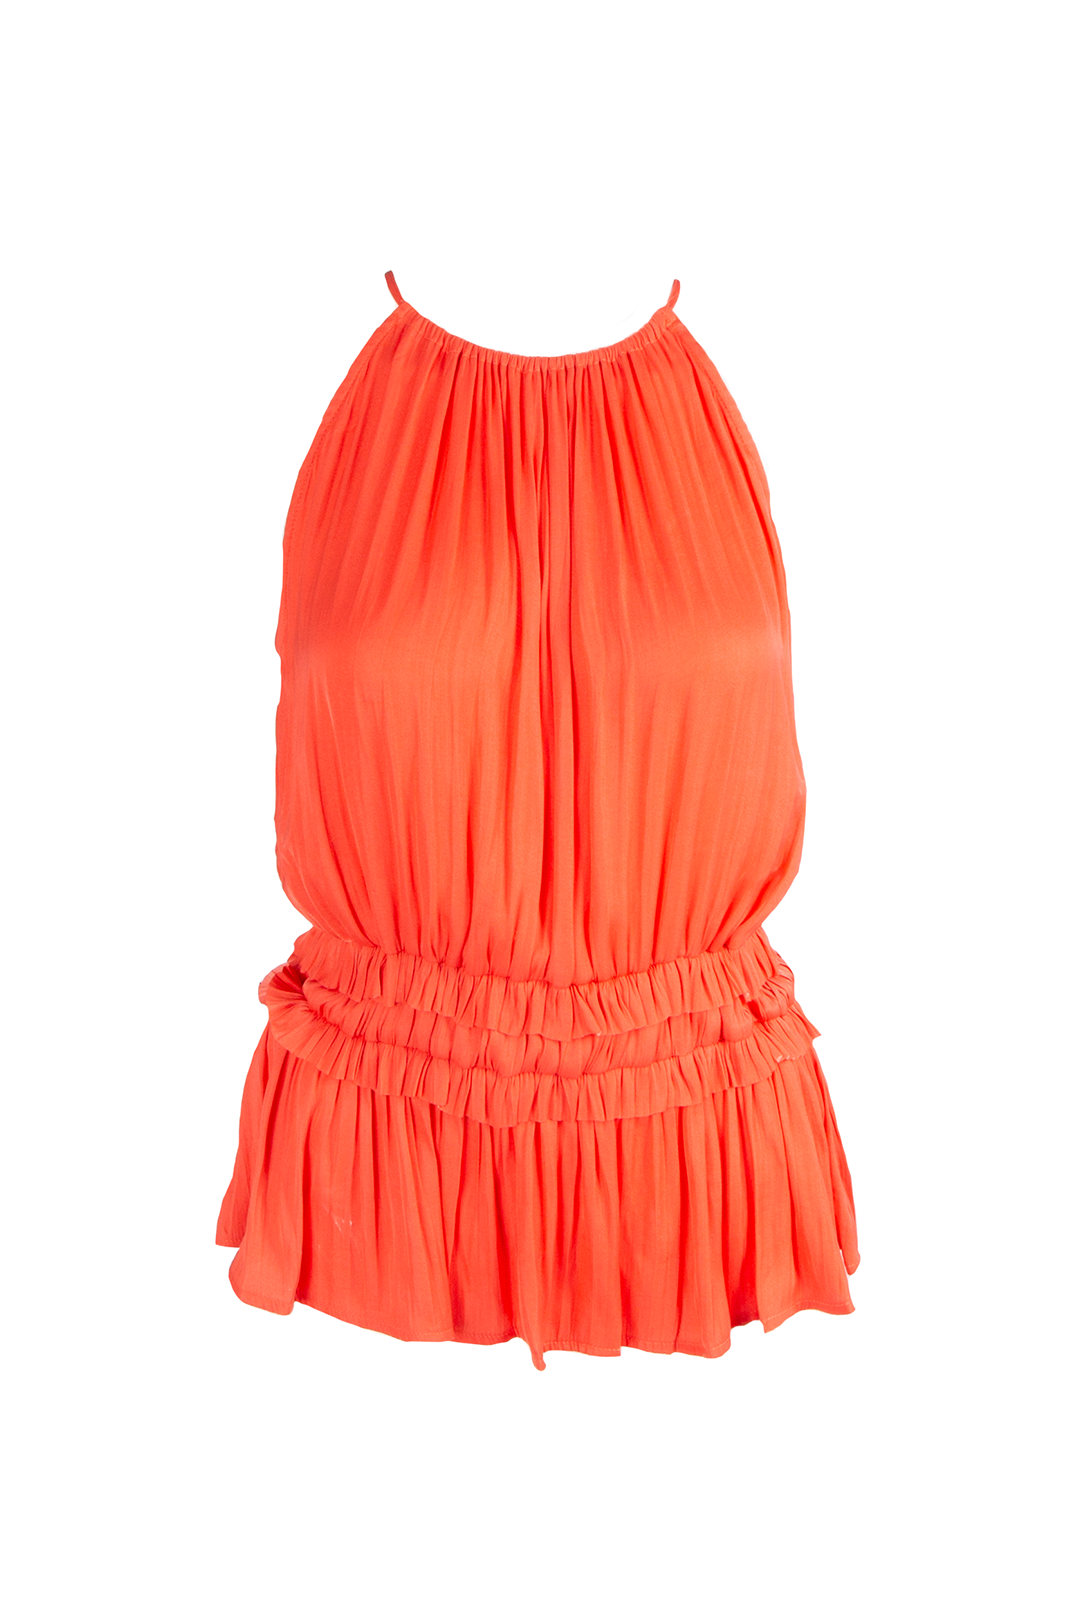 Pleated Halter Top with Back Cut Out - Tangerine